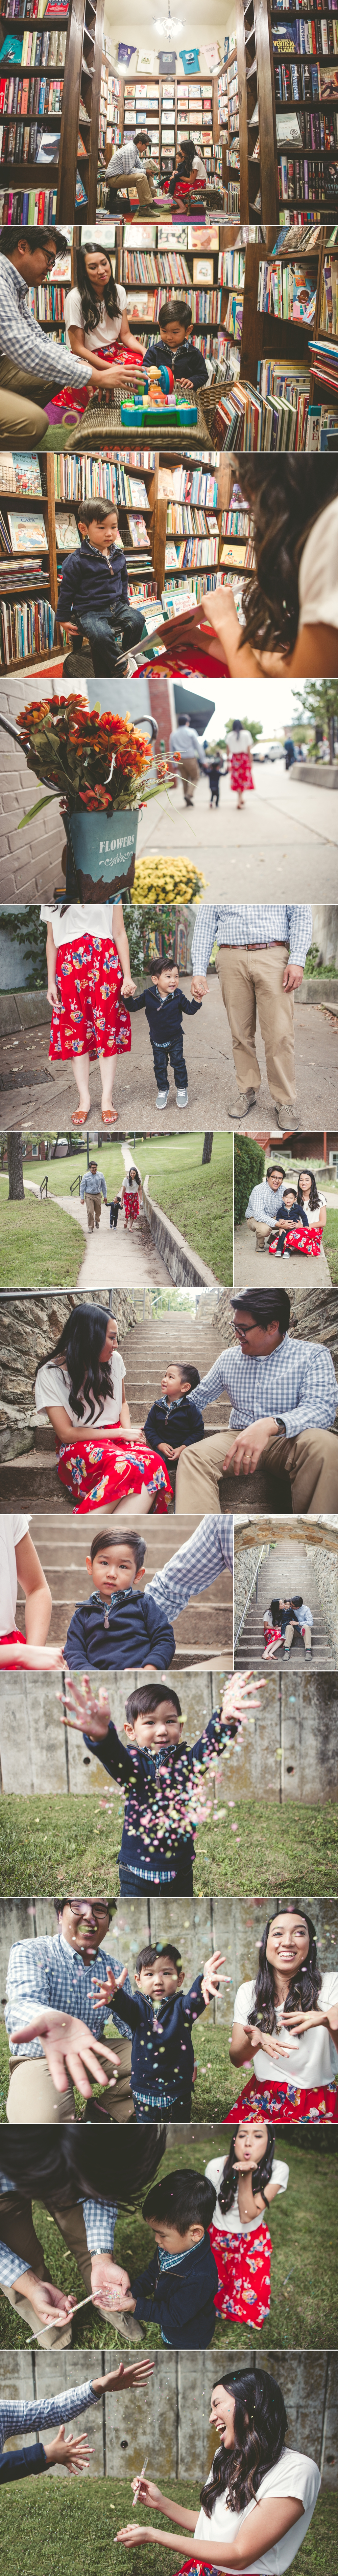 jason_domingues_photography_kansas_city_photographer_family_portraits_pictures_session_lawrence_ks_dusty_bookshelf.JPG